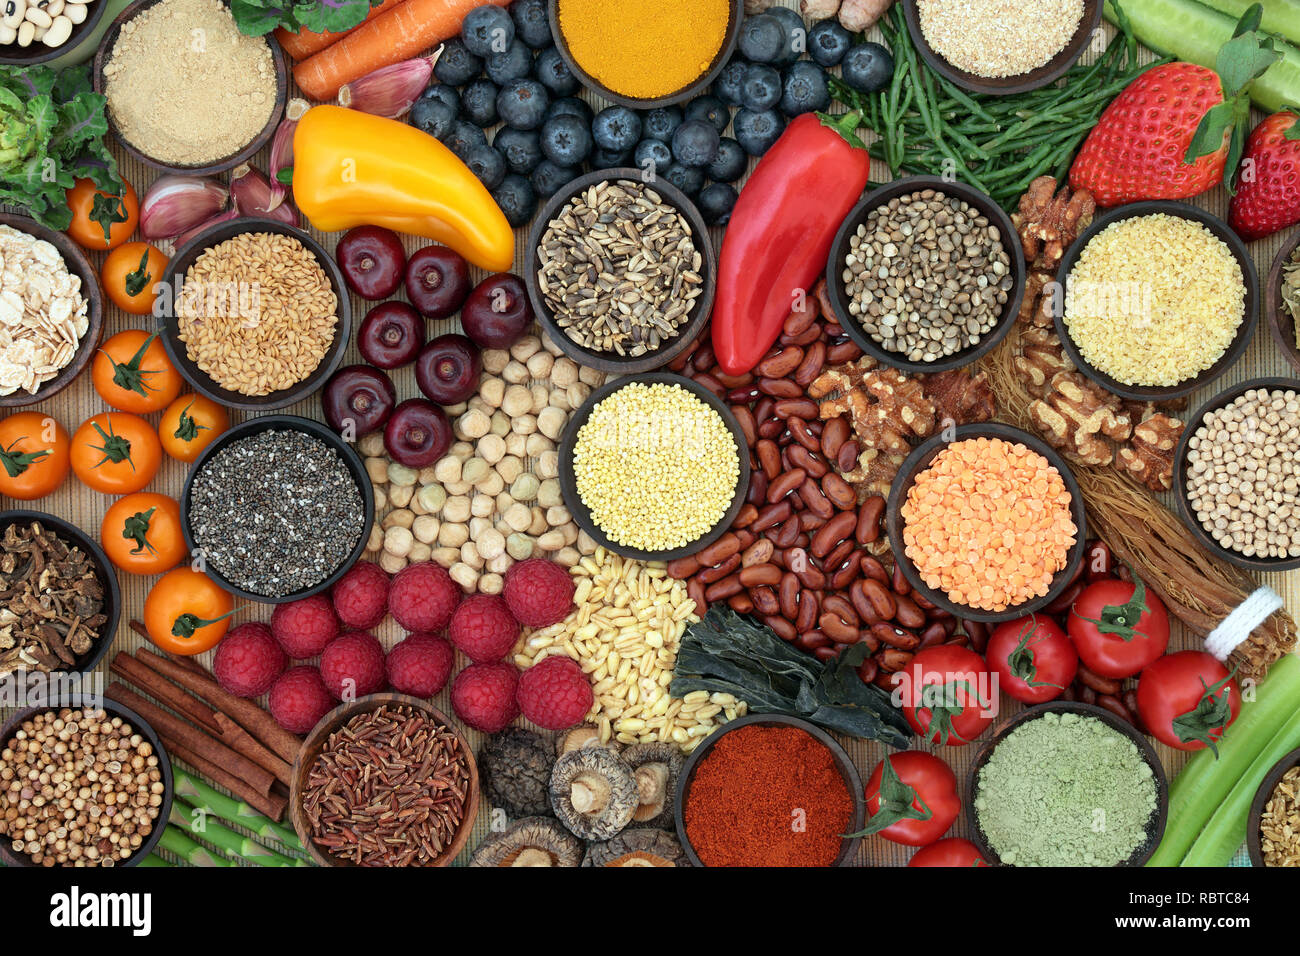 Liver detox diet health food concept with fresh fruit, vegetables, herbs, spices, supplement powders, legumes, herbal medicine, grains, nuts and seeds - Stock Image